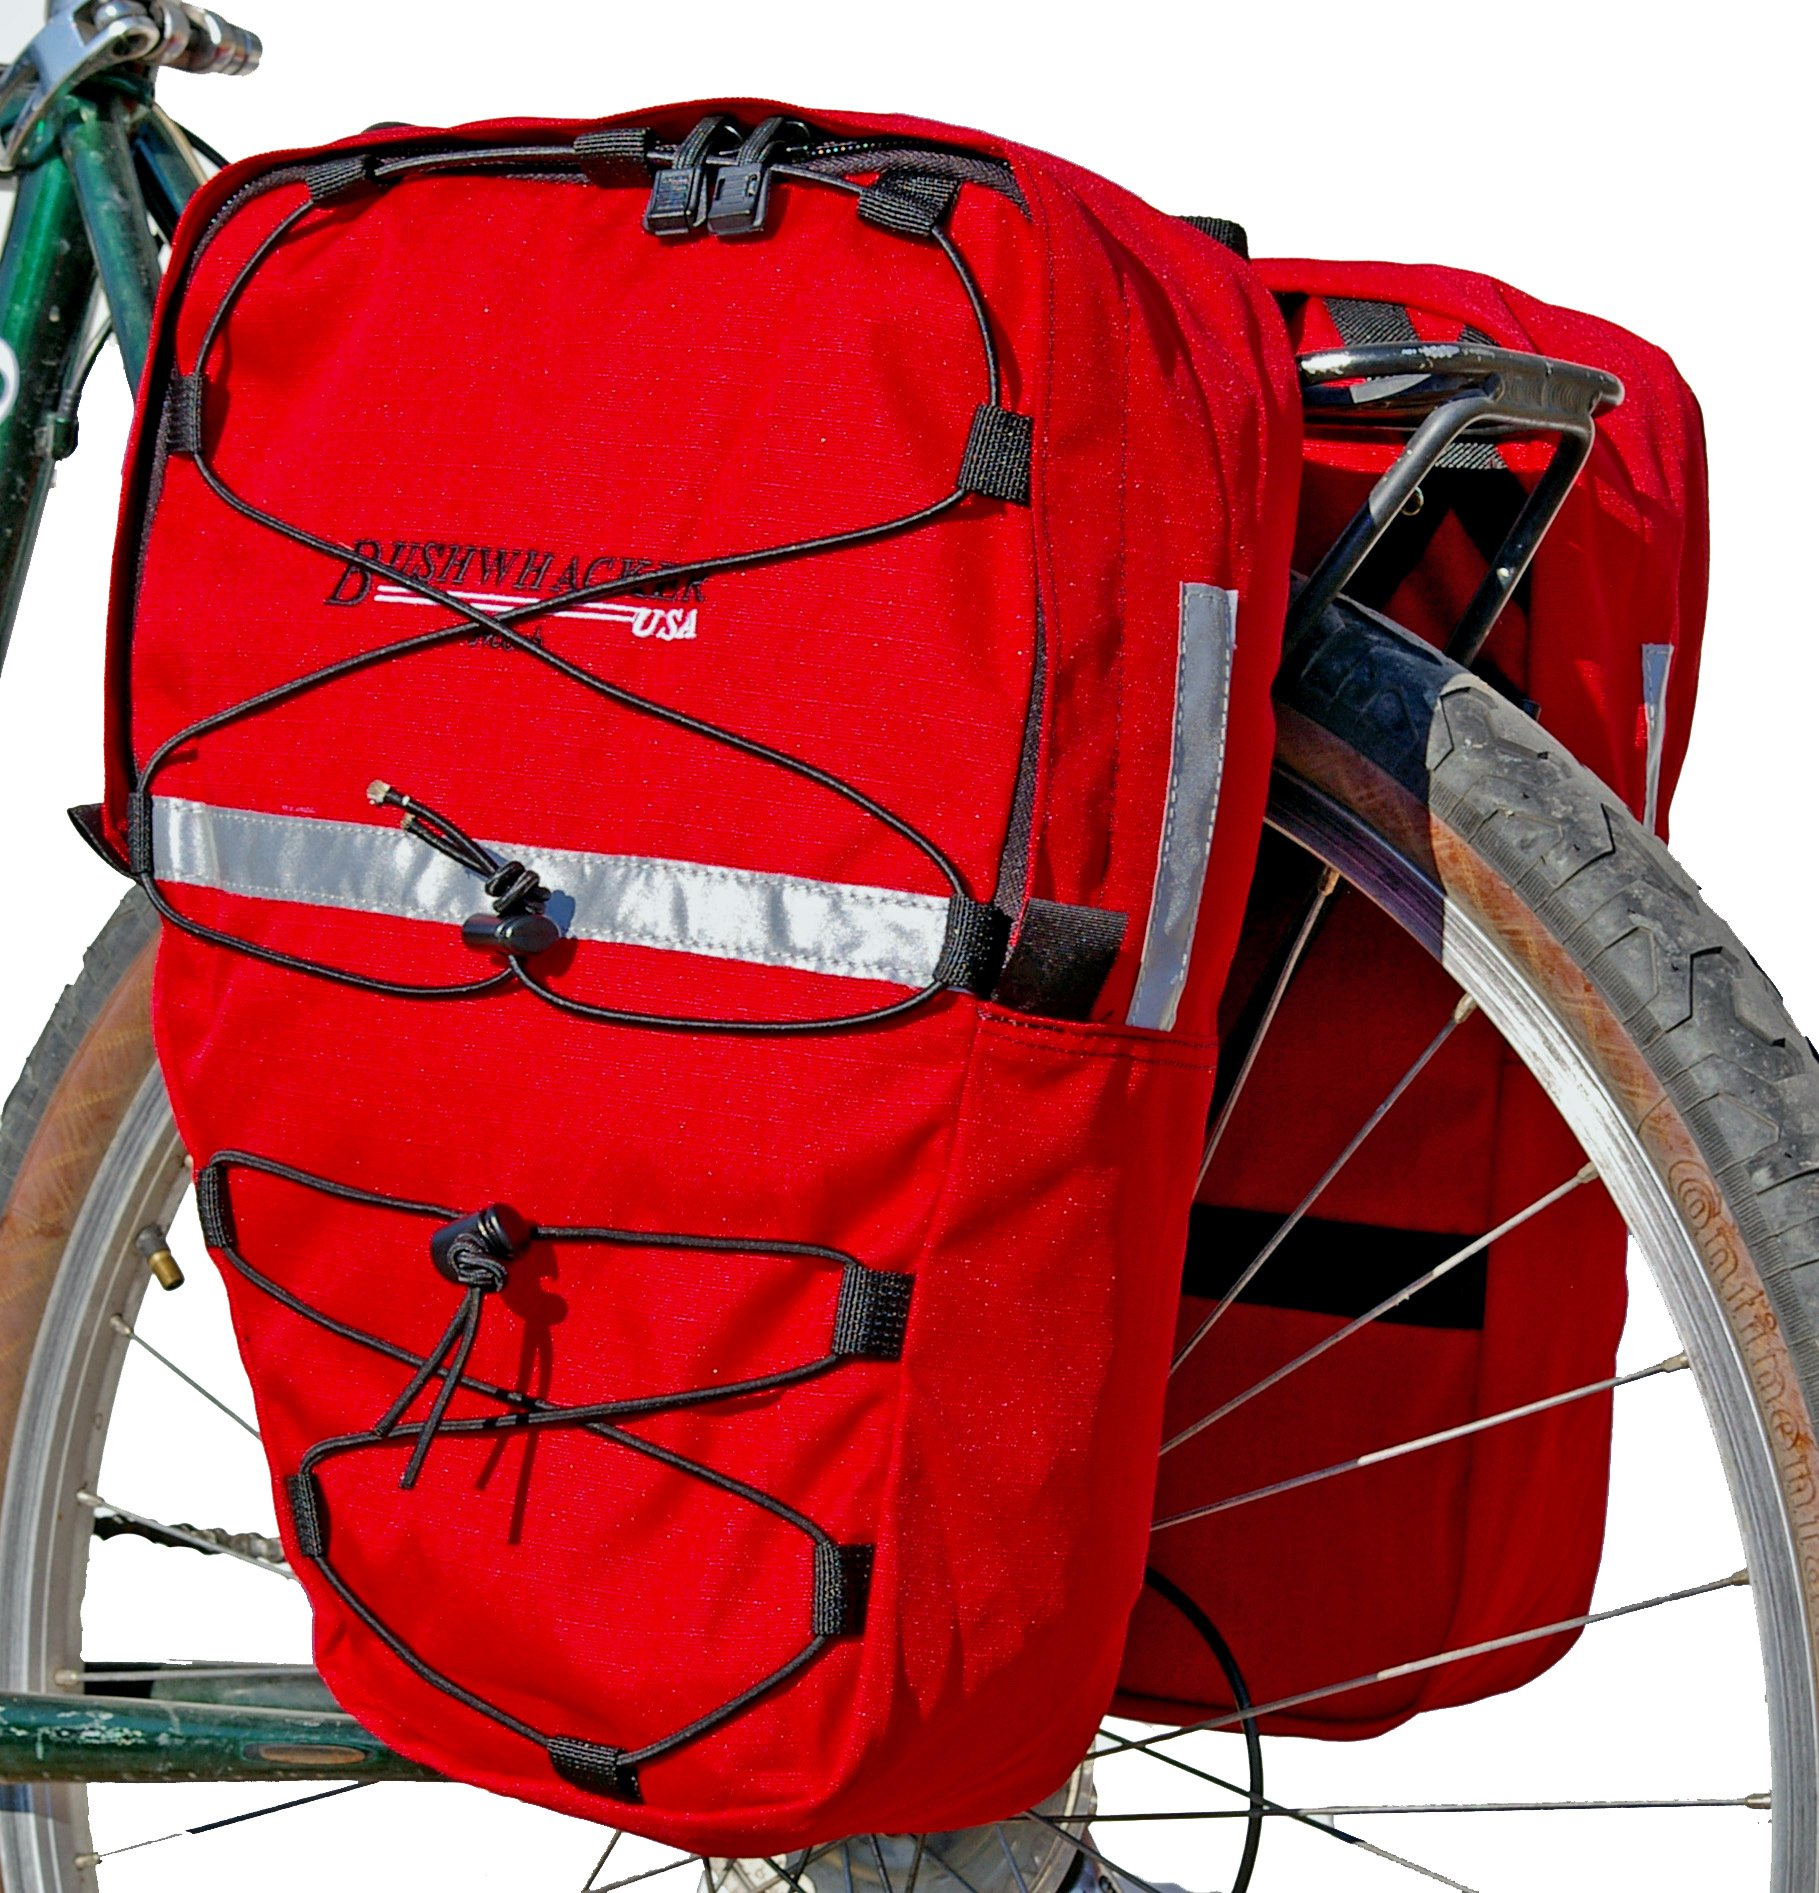 Bushwhacker Moab Red - Bicycle Front / Rear Pannier w/ Reflective Trim Cycling Rack Pack Bike Bag Frame Accessories Trunk